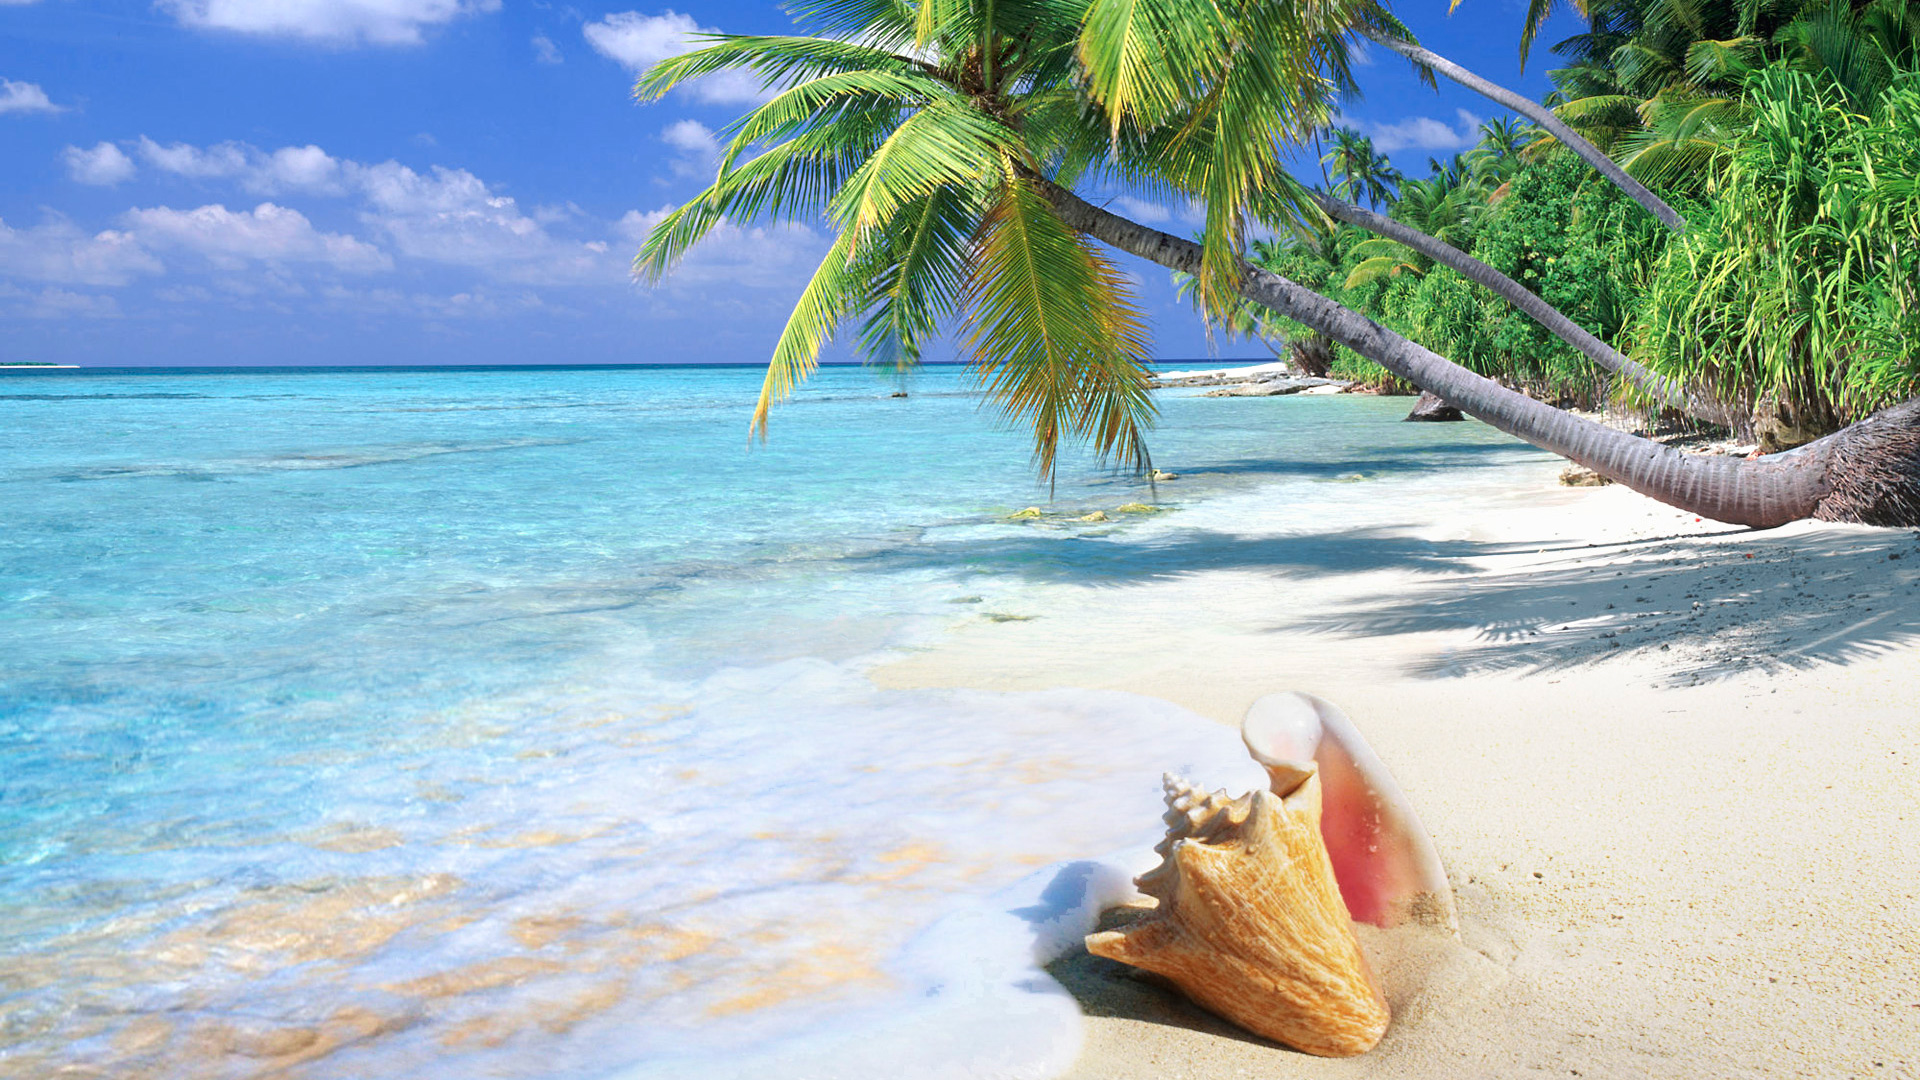 beach shell wallpapers55com   Best Wallpapers for PCs Laptops 1920x1080